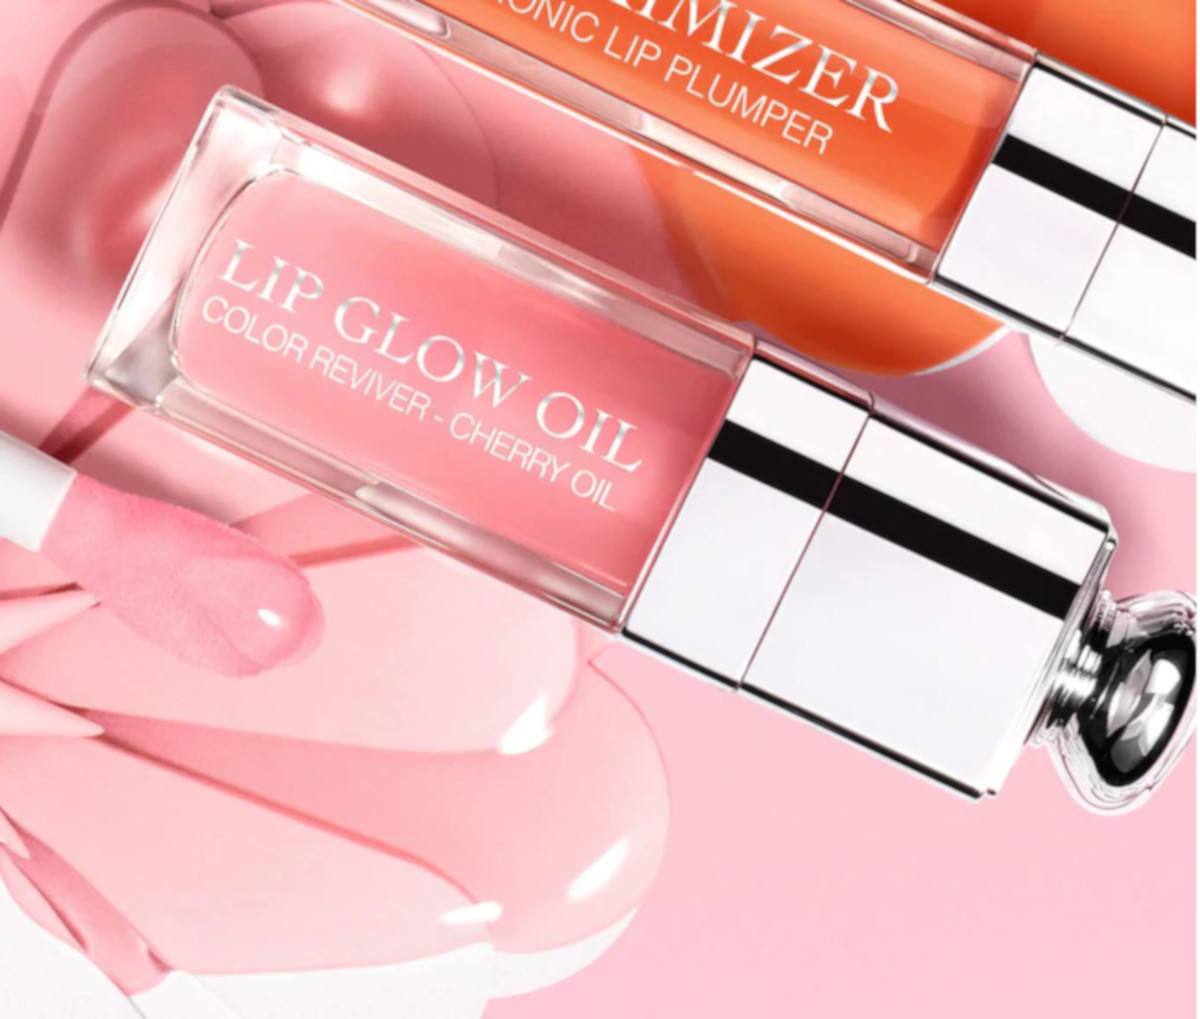 Dior Spring Collection 2021 Pure Glow Lip Glow Oil